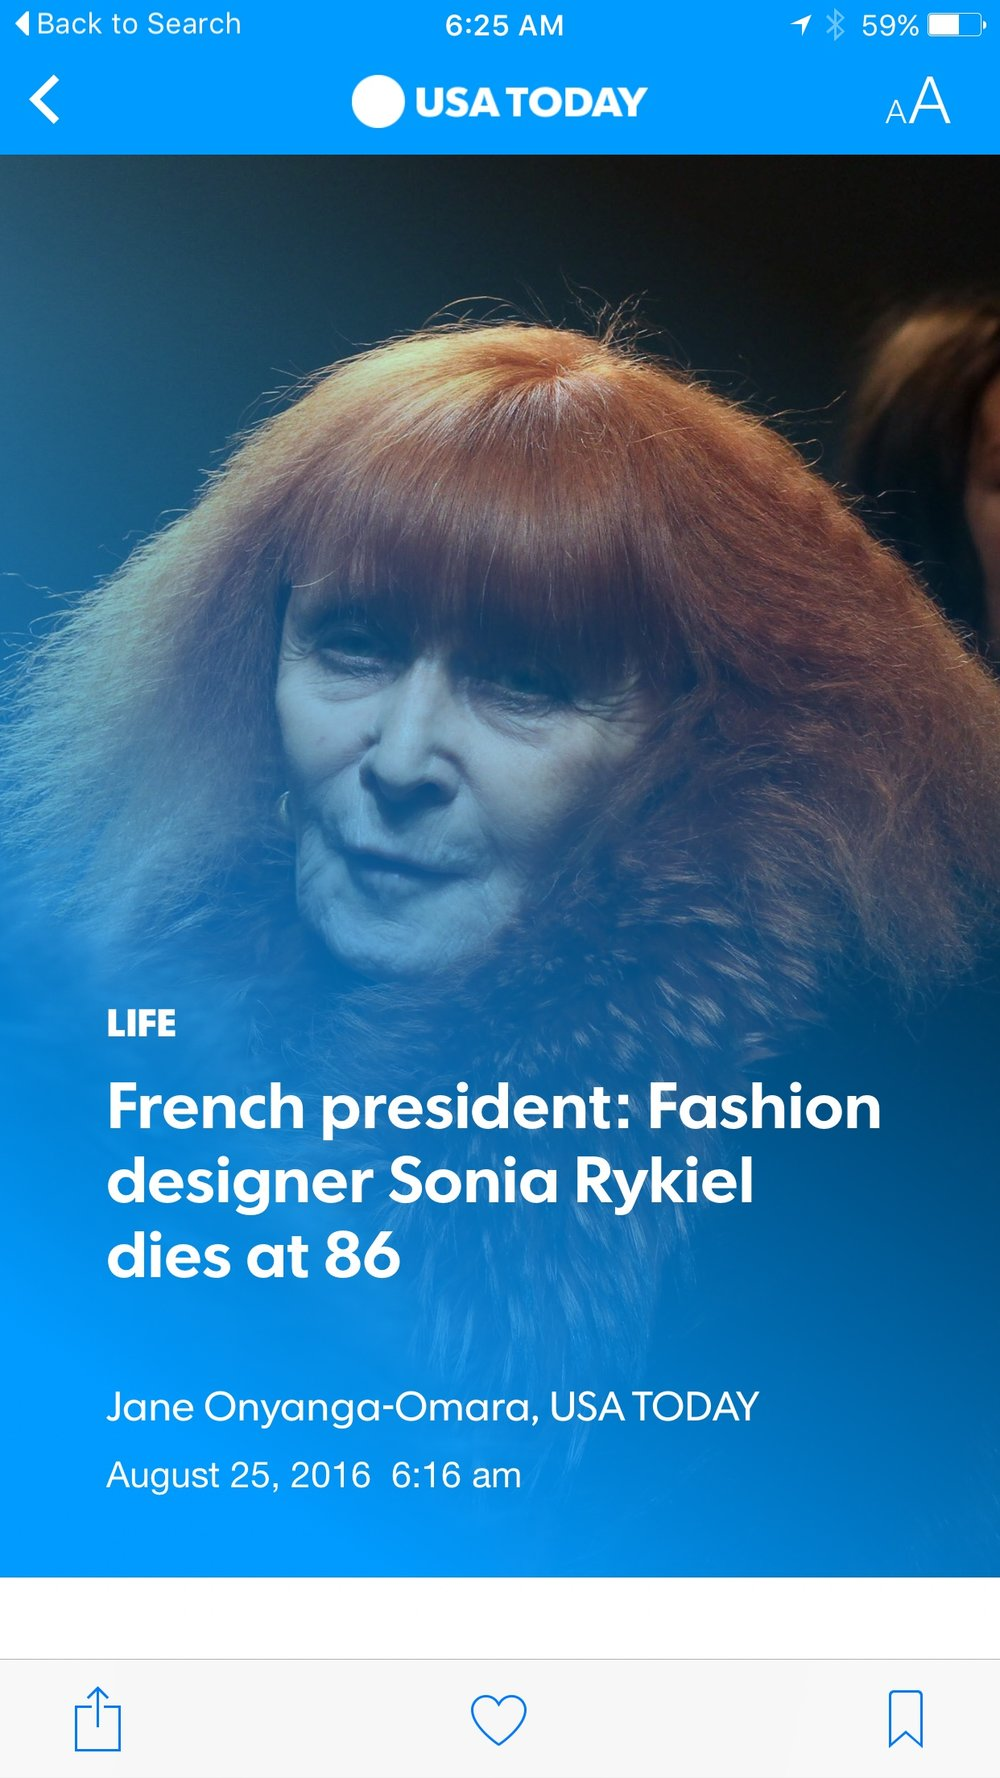 Sonia Rykiel courtesy of USA Today